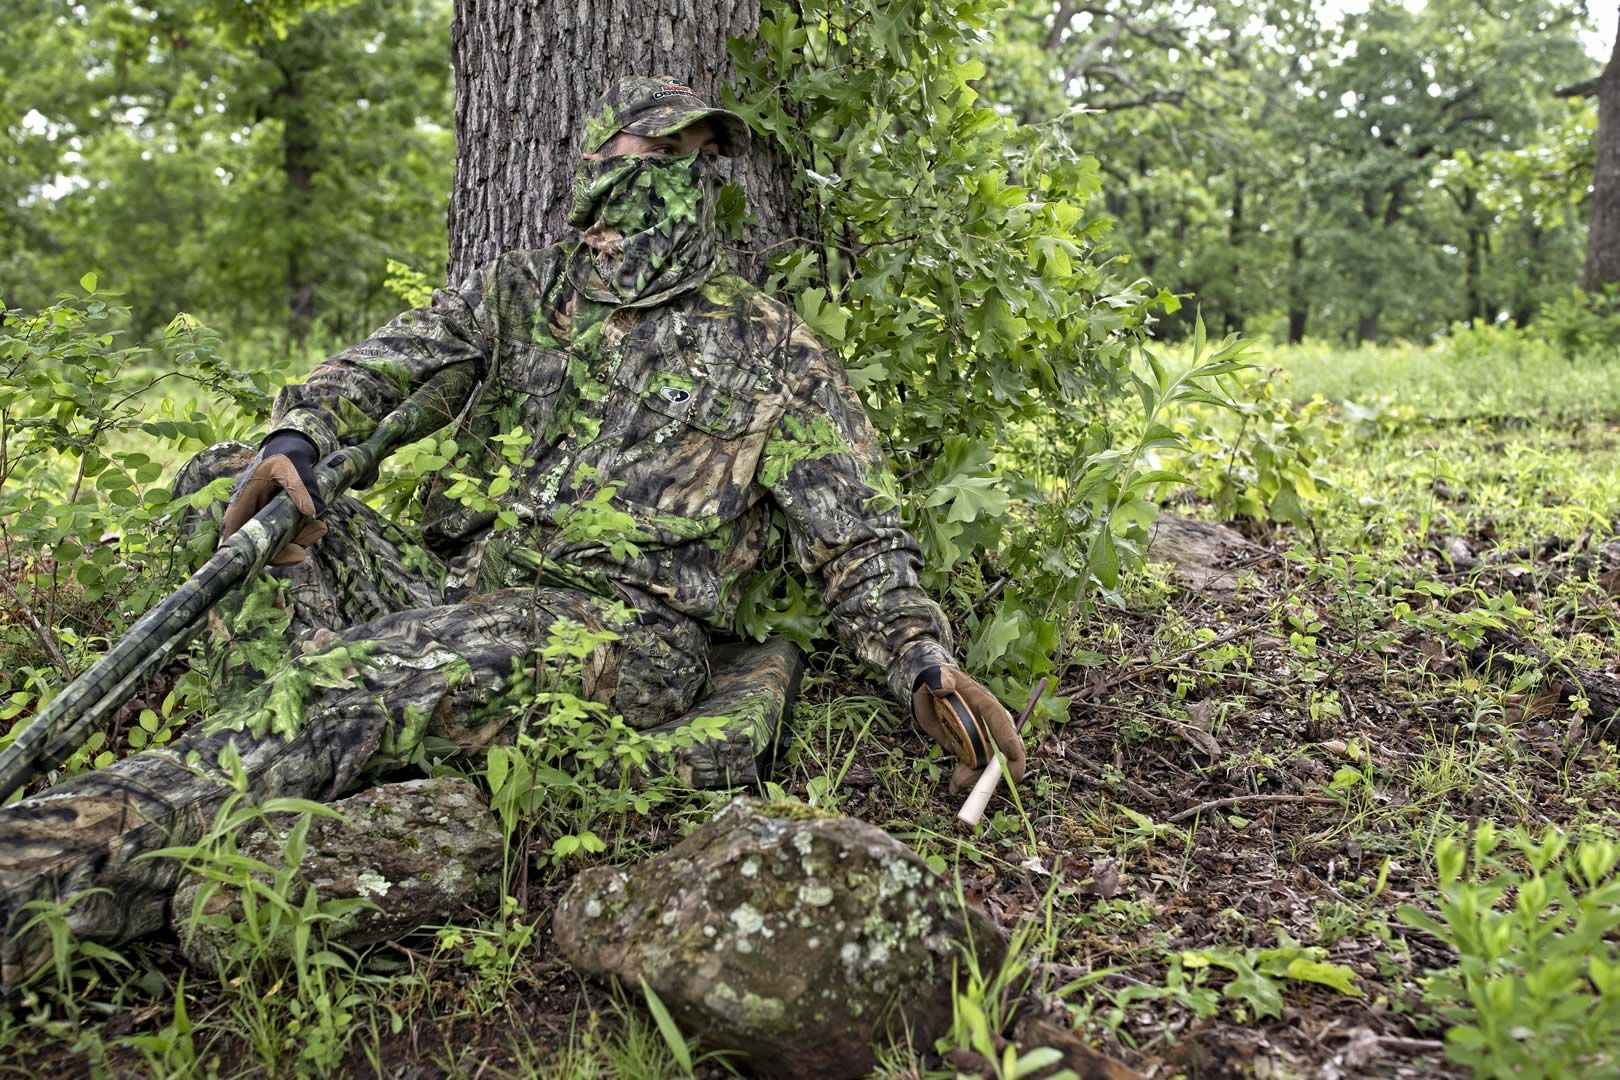 ccb1477123d64 Mossy Oak Camouflage   Hunting Kit/Gear   Camouflage, Camo, Camo ...